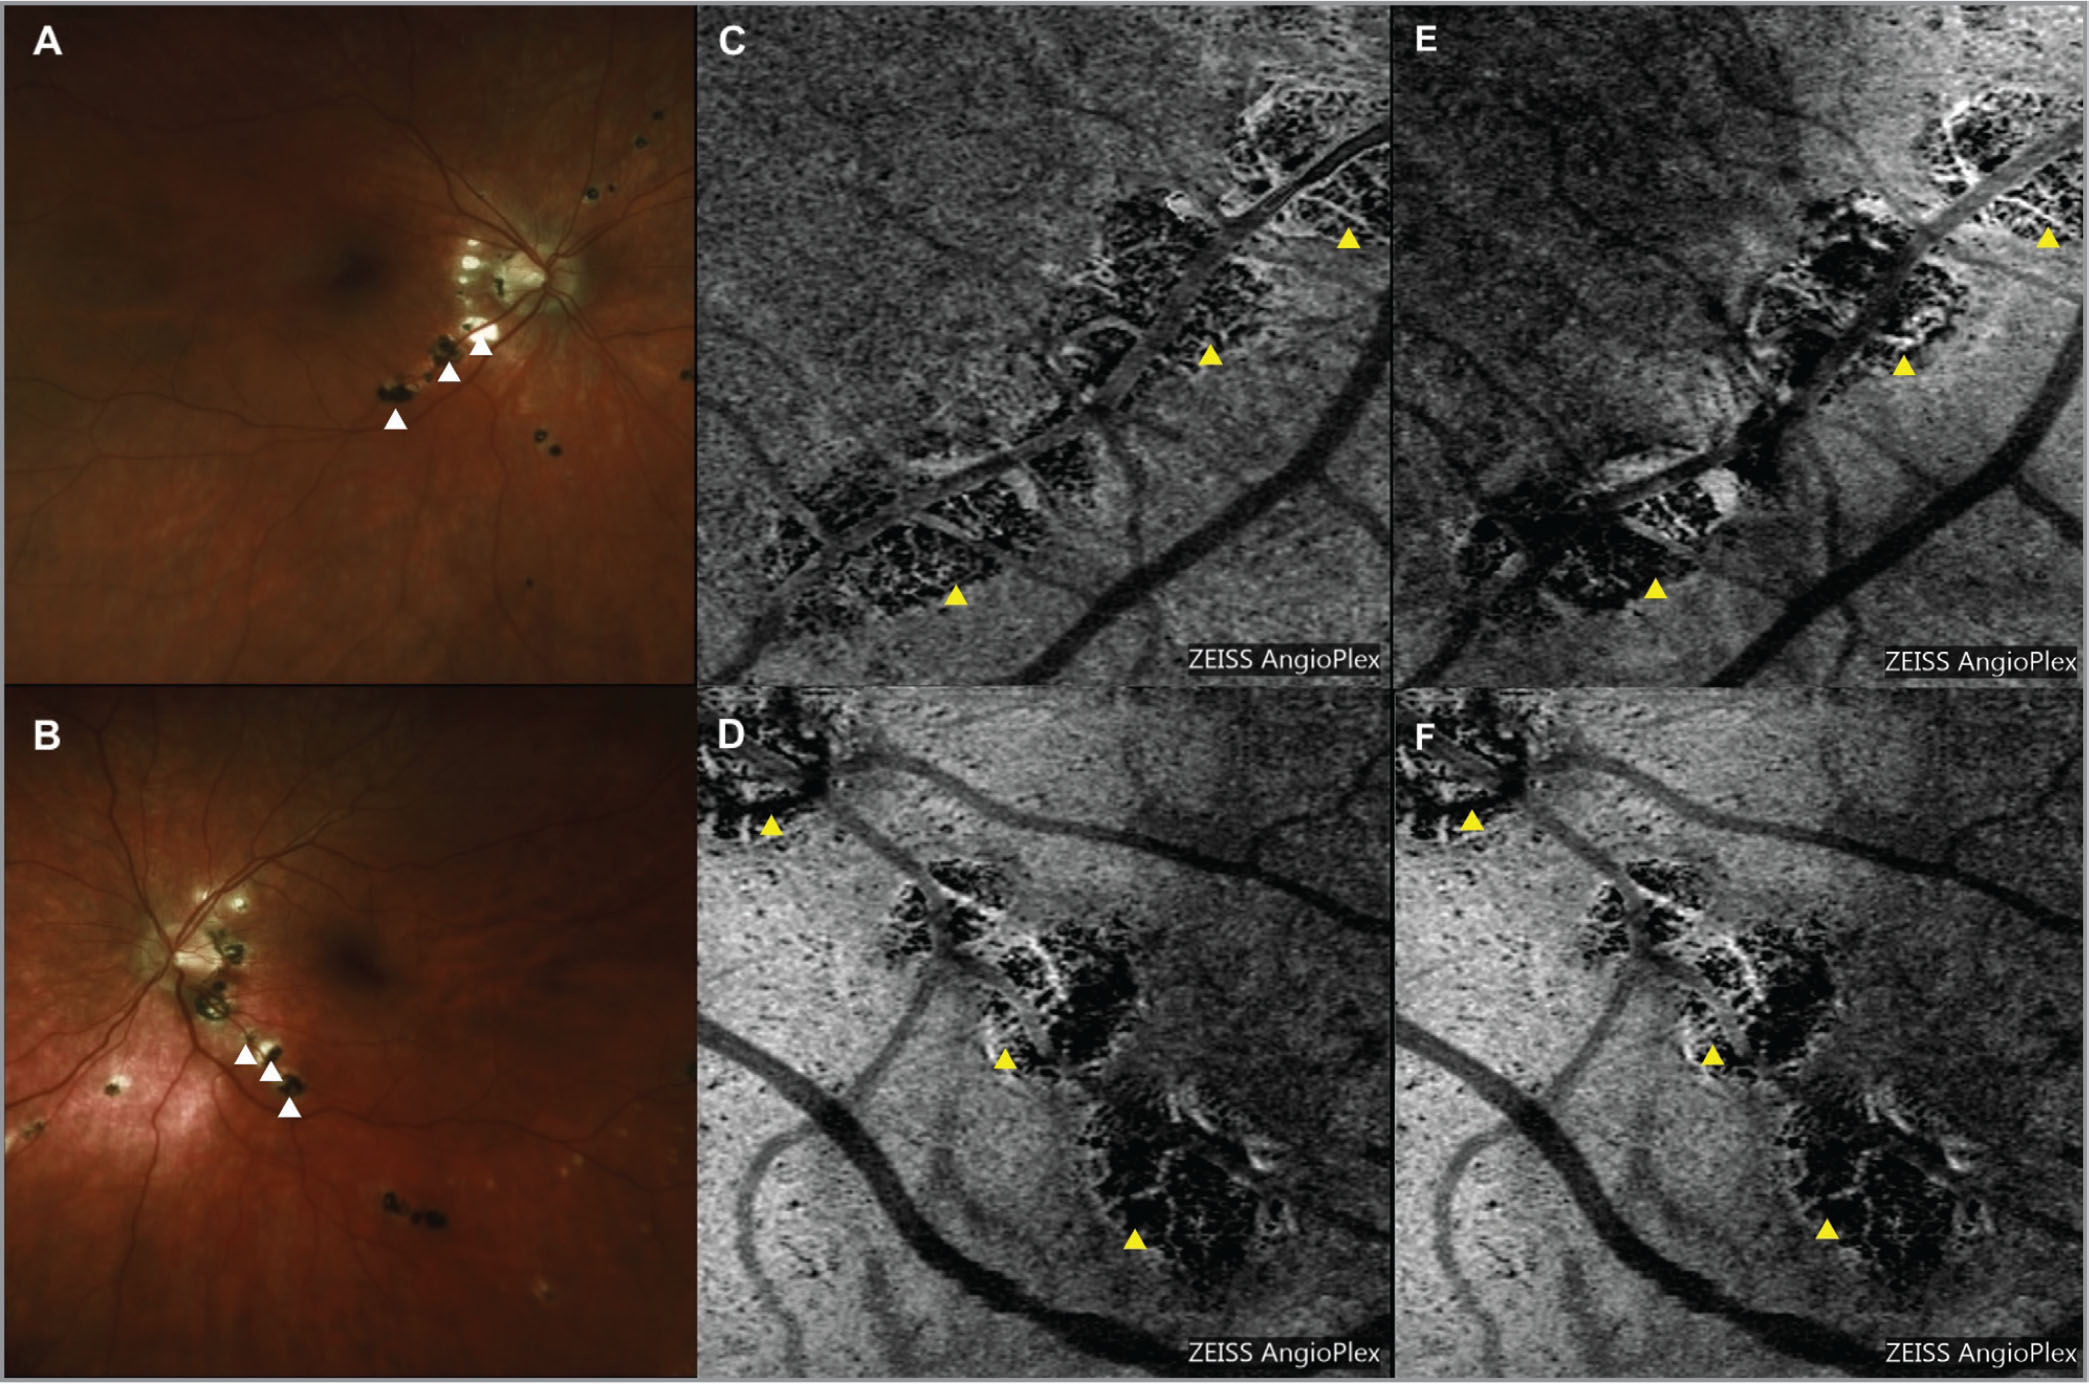 """Color fundus photographs demonstrating peripapillary atrophy and discrete pigmented """"punched out"""" scars (white arrowheads) along the inferotemporal arcades (A, B). Optical coherence tomography angiography at the level of the choriocapillaris (C, D) and deep choroid (E, F) demonstrates sharply demarcated areas of hypoperfusion corresponding to the scars (yellow arrowheads)."""